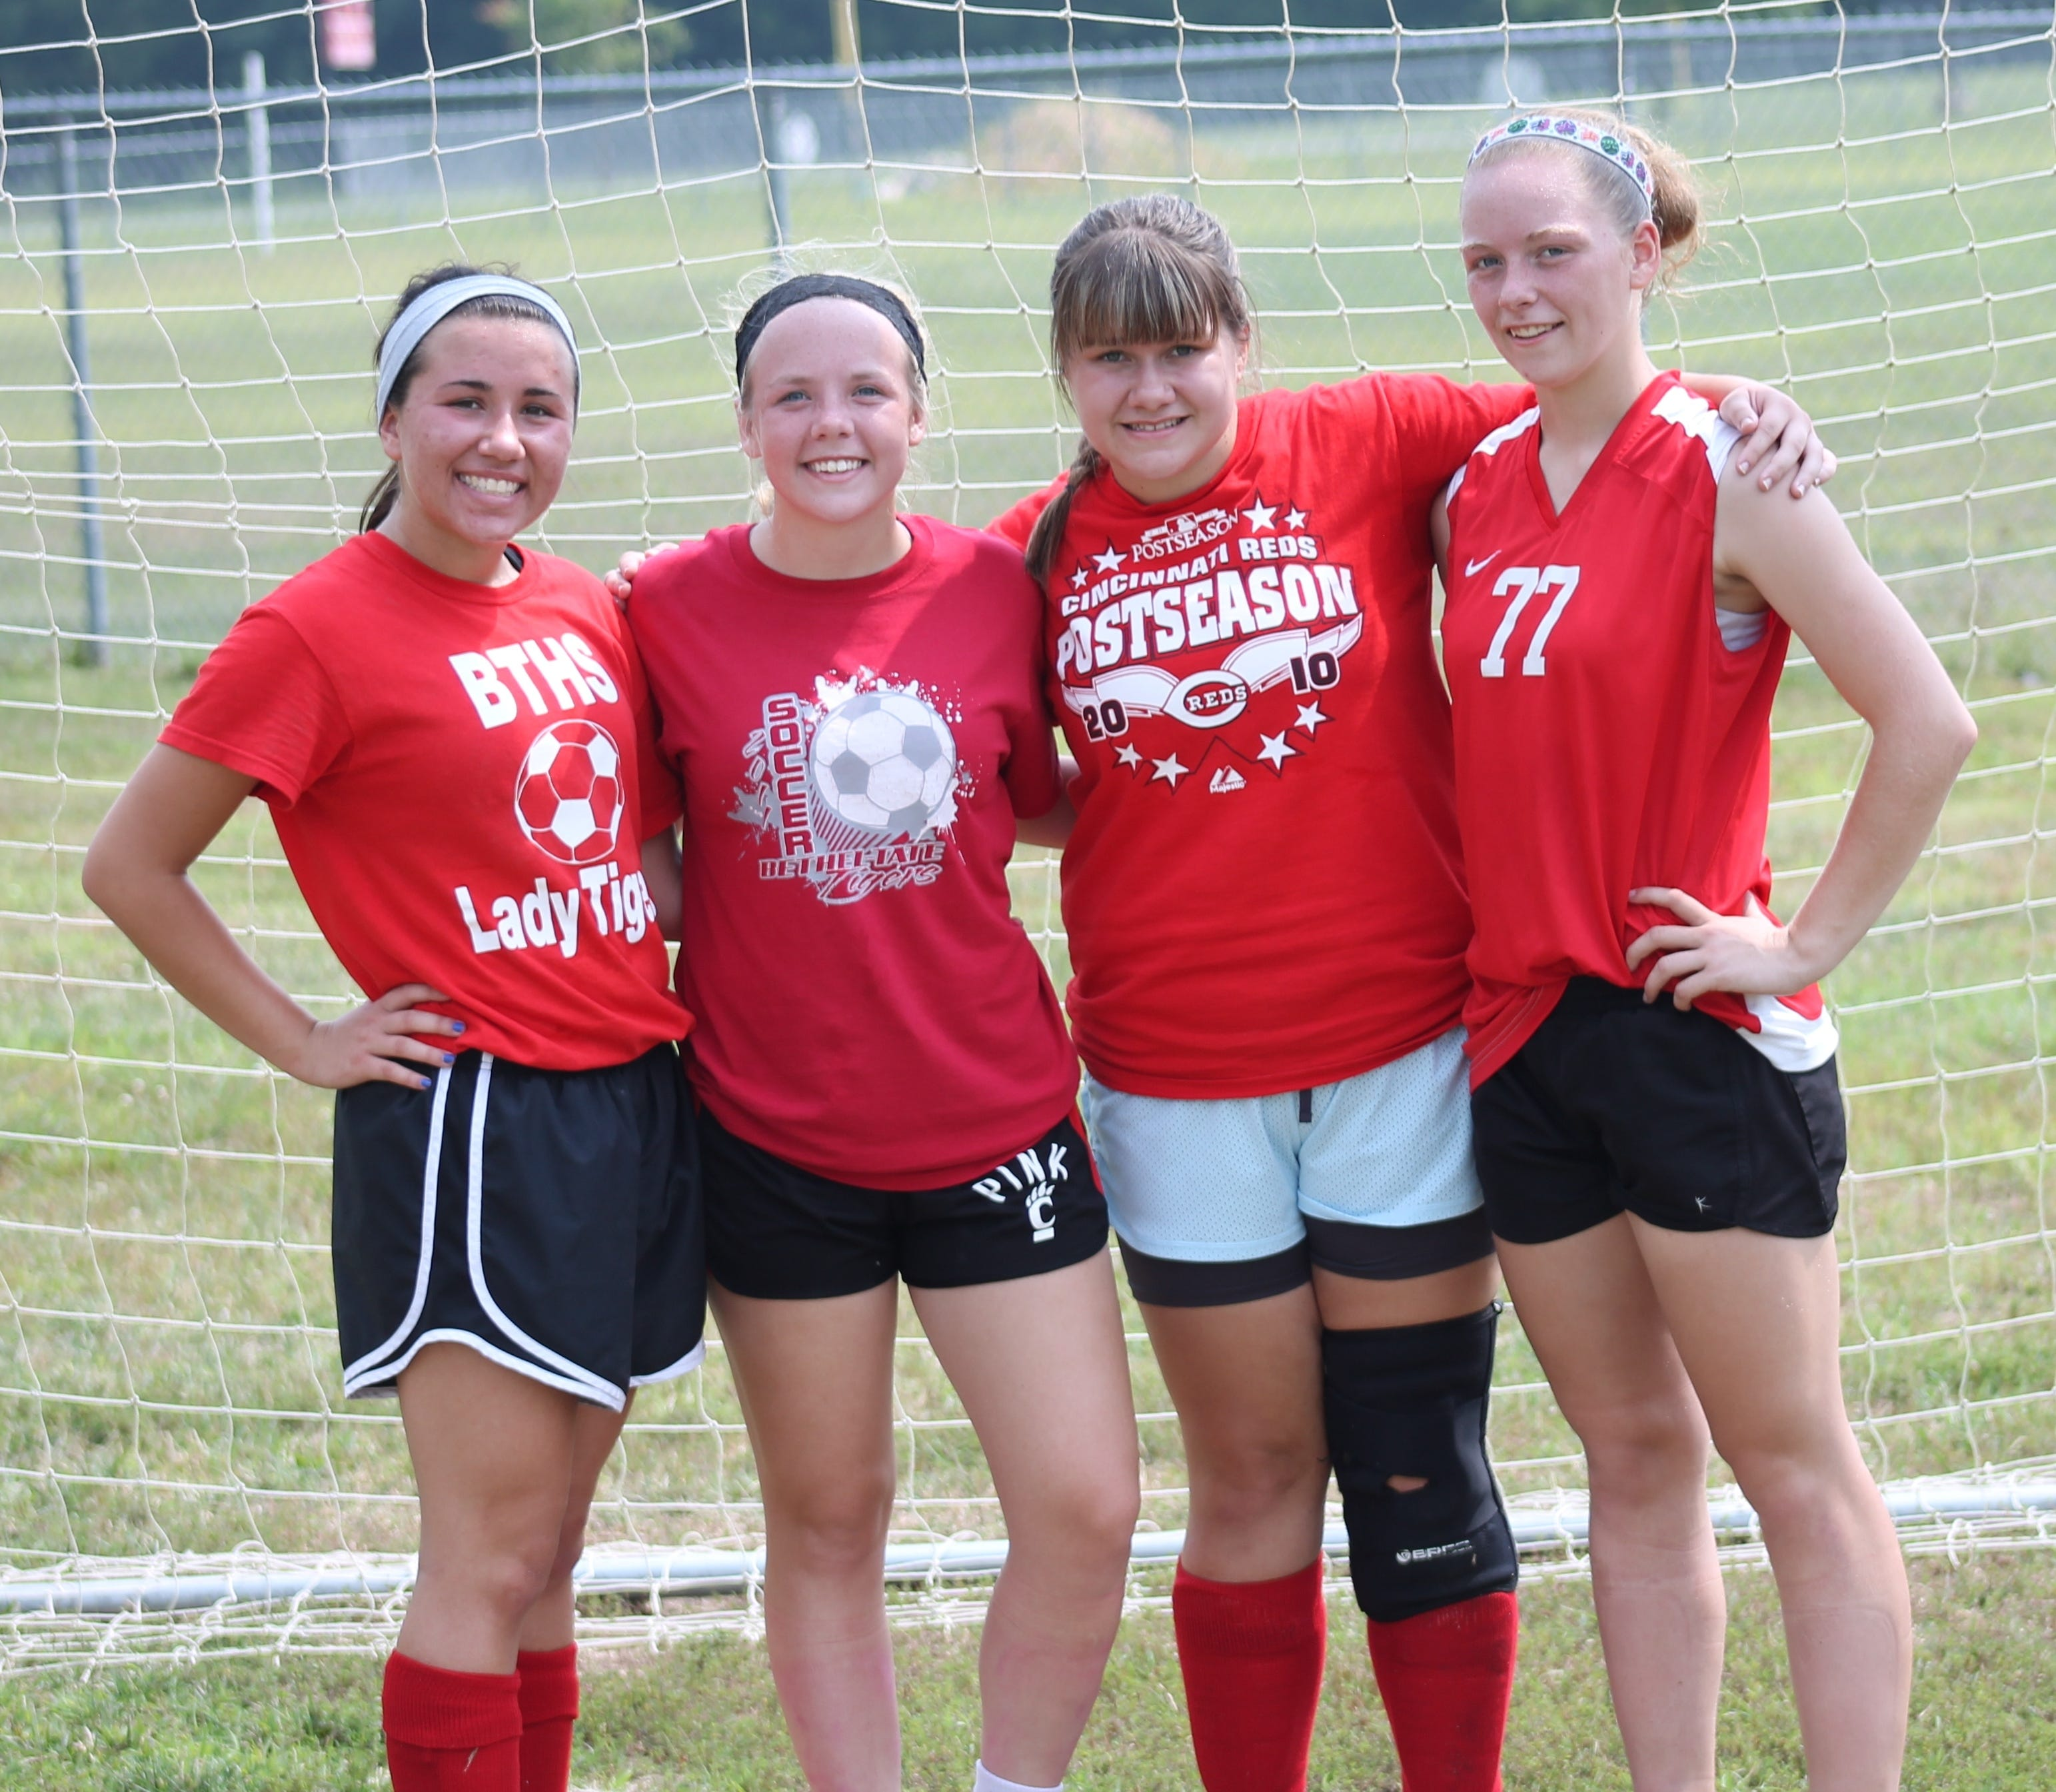 Bethel-Tate's girls soccer seniors are, from left, Casey Collins, Michelle Cornelius, Morgan Walters and Kaitlynn Perkins.